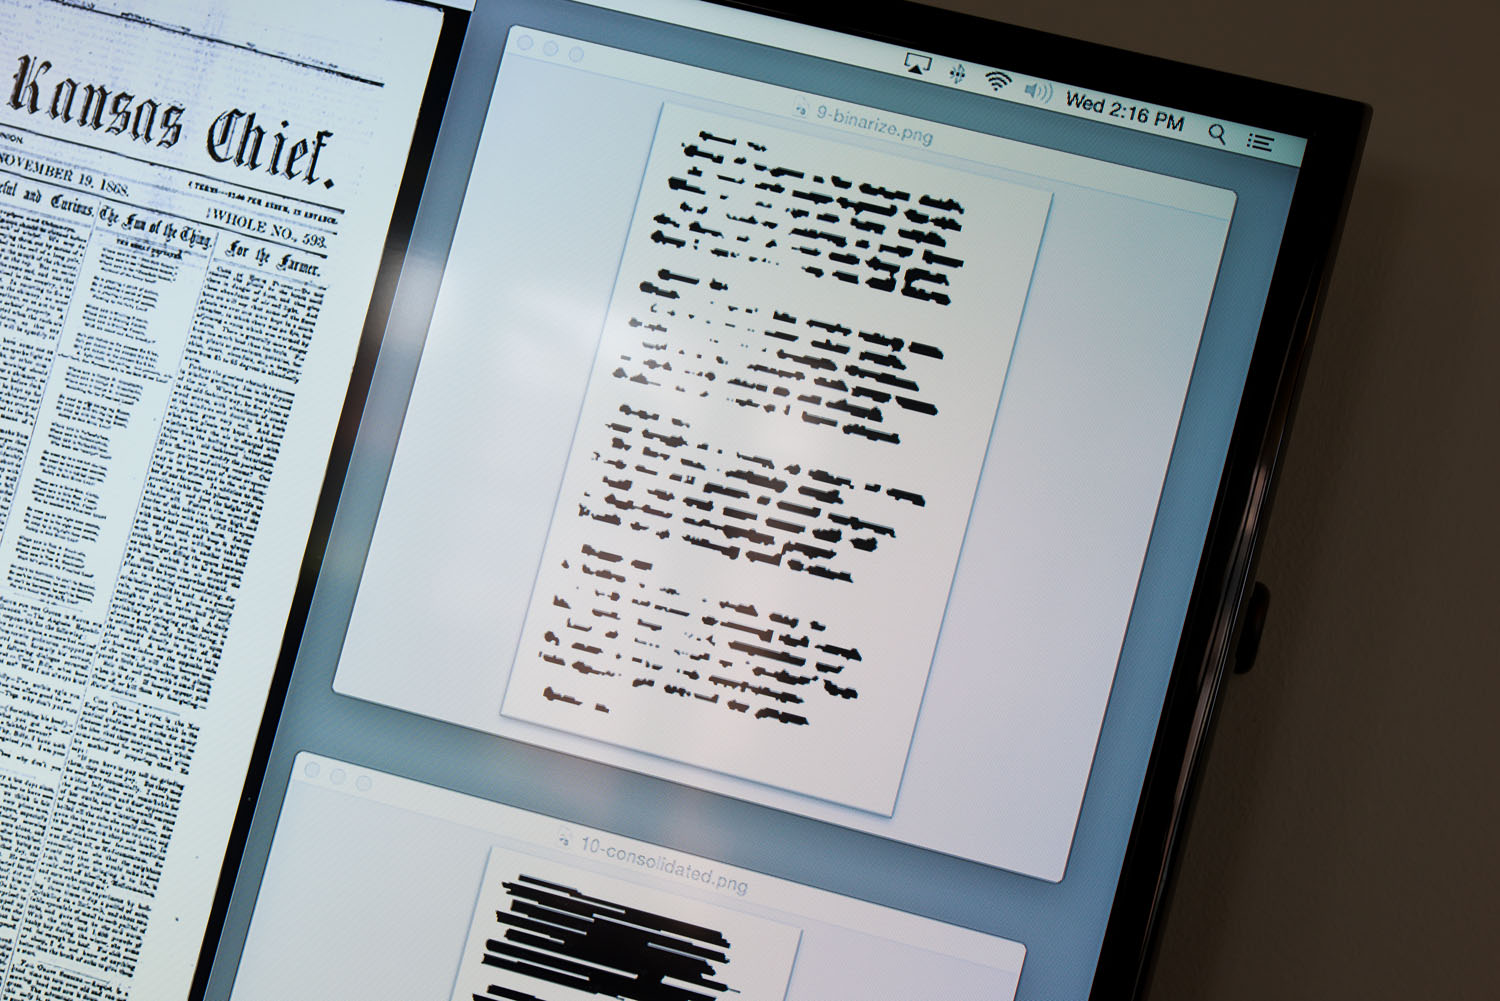 The UNL team's program scans digitized news papers and spots poetry based on visual clues.